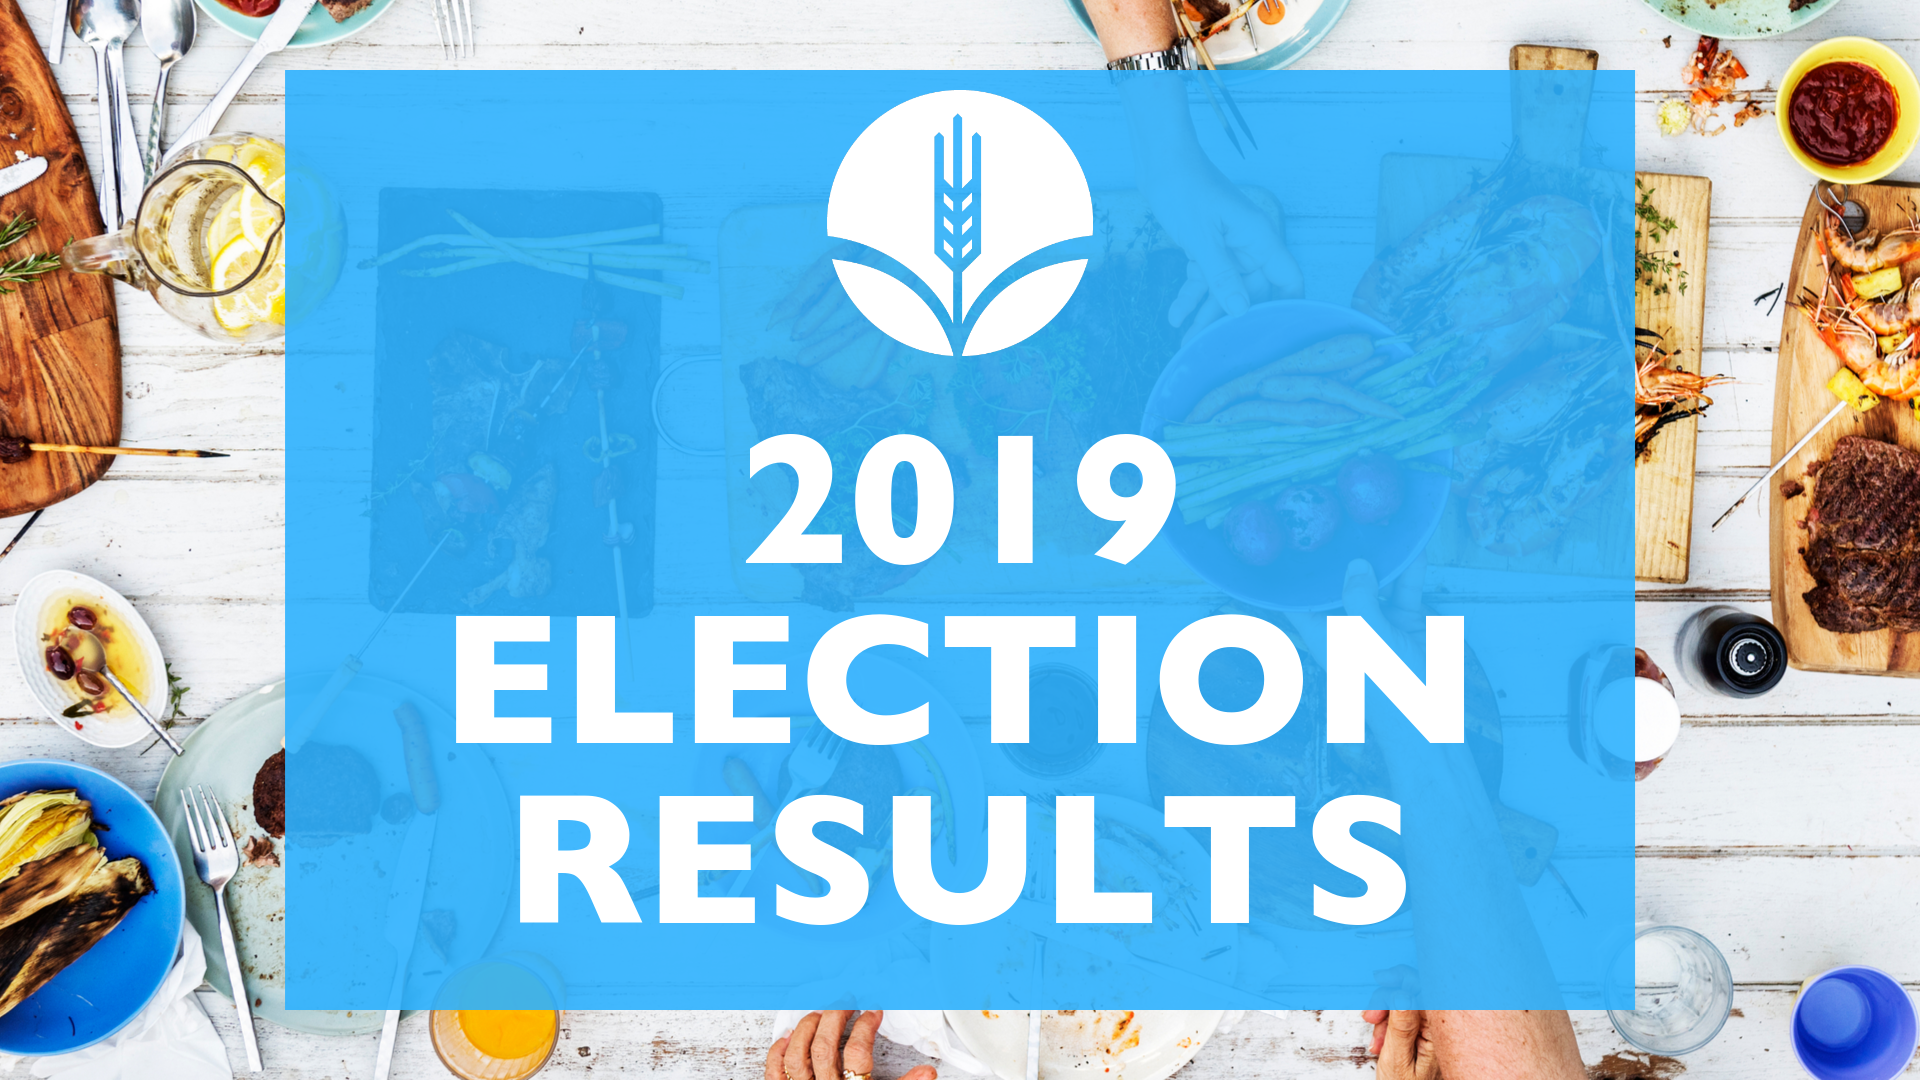 2019 Election Results Image.png